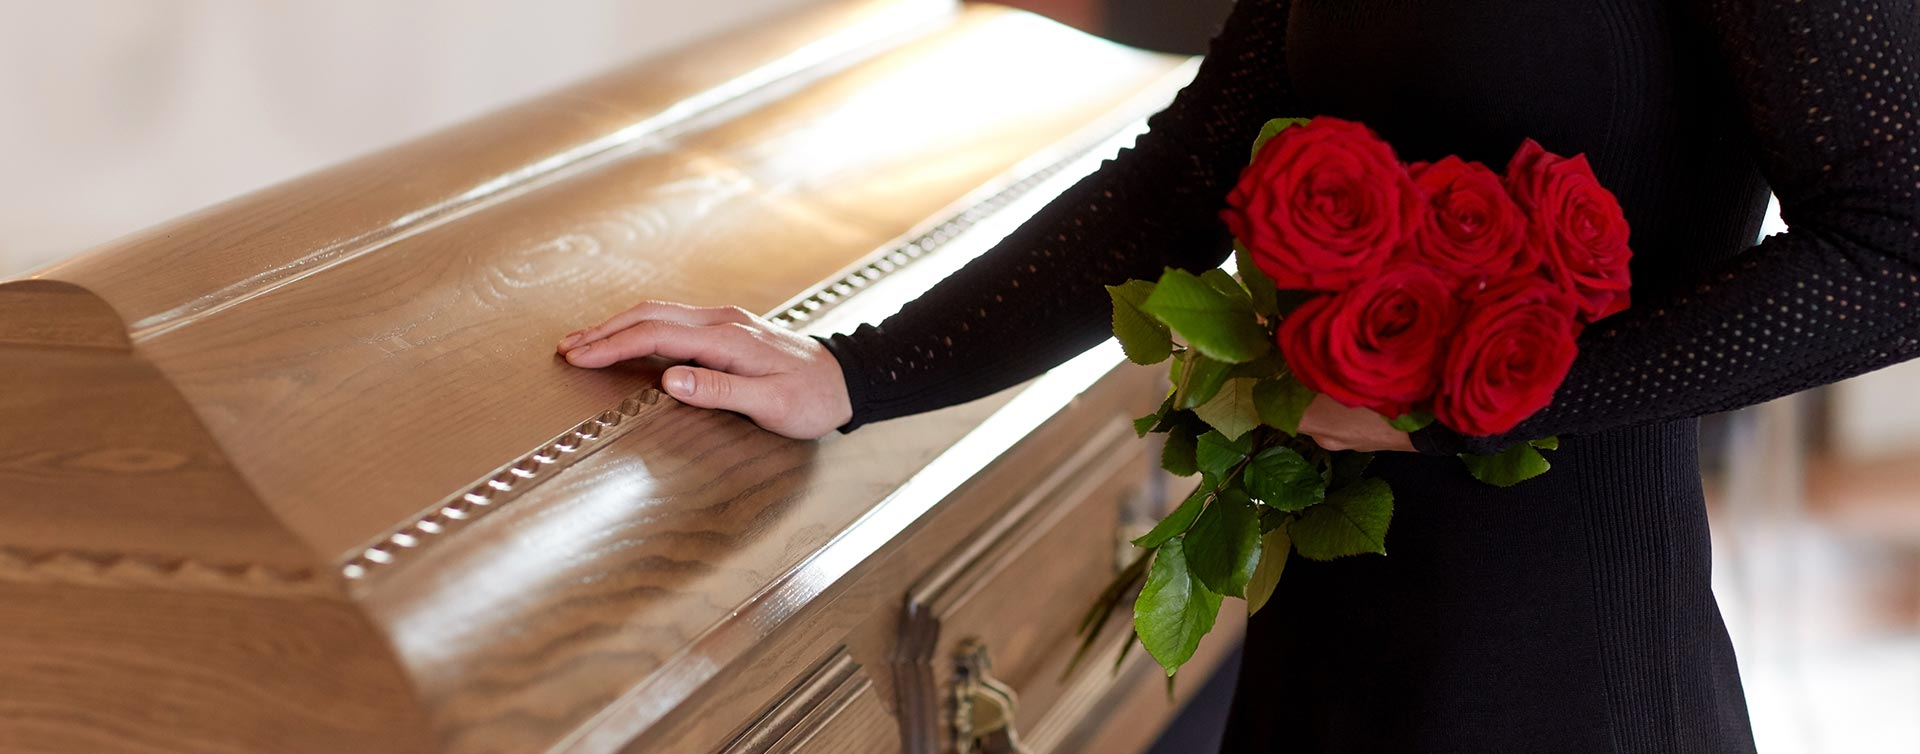 Professional funeral arrangement